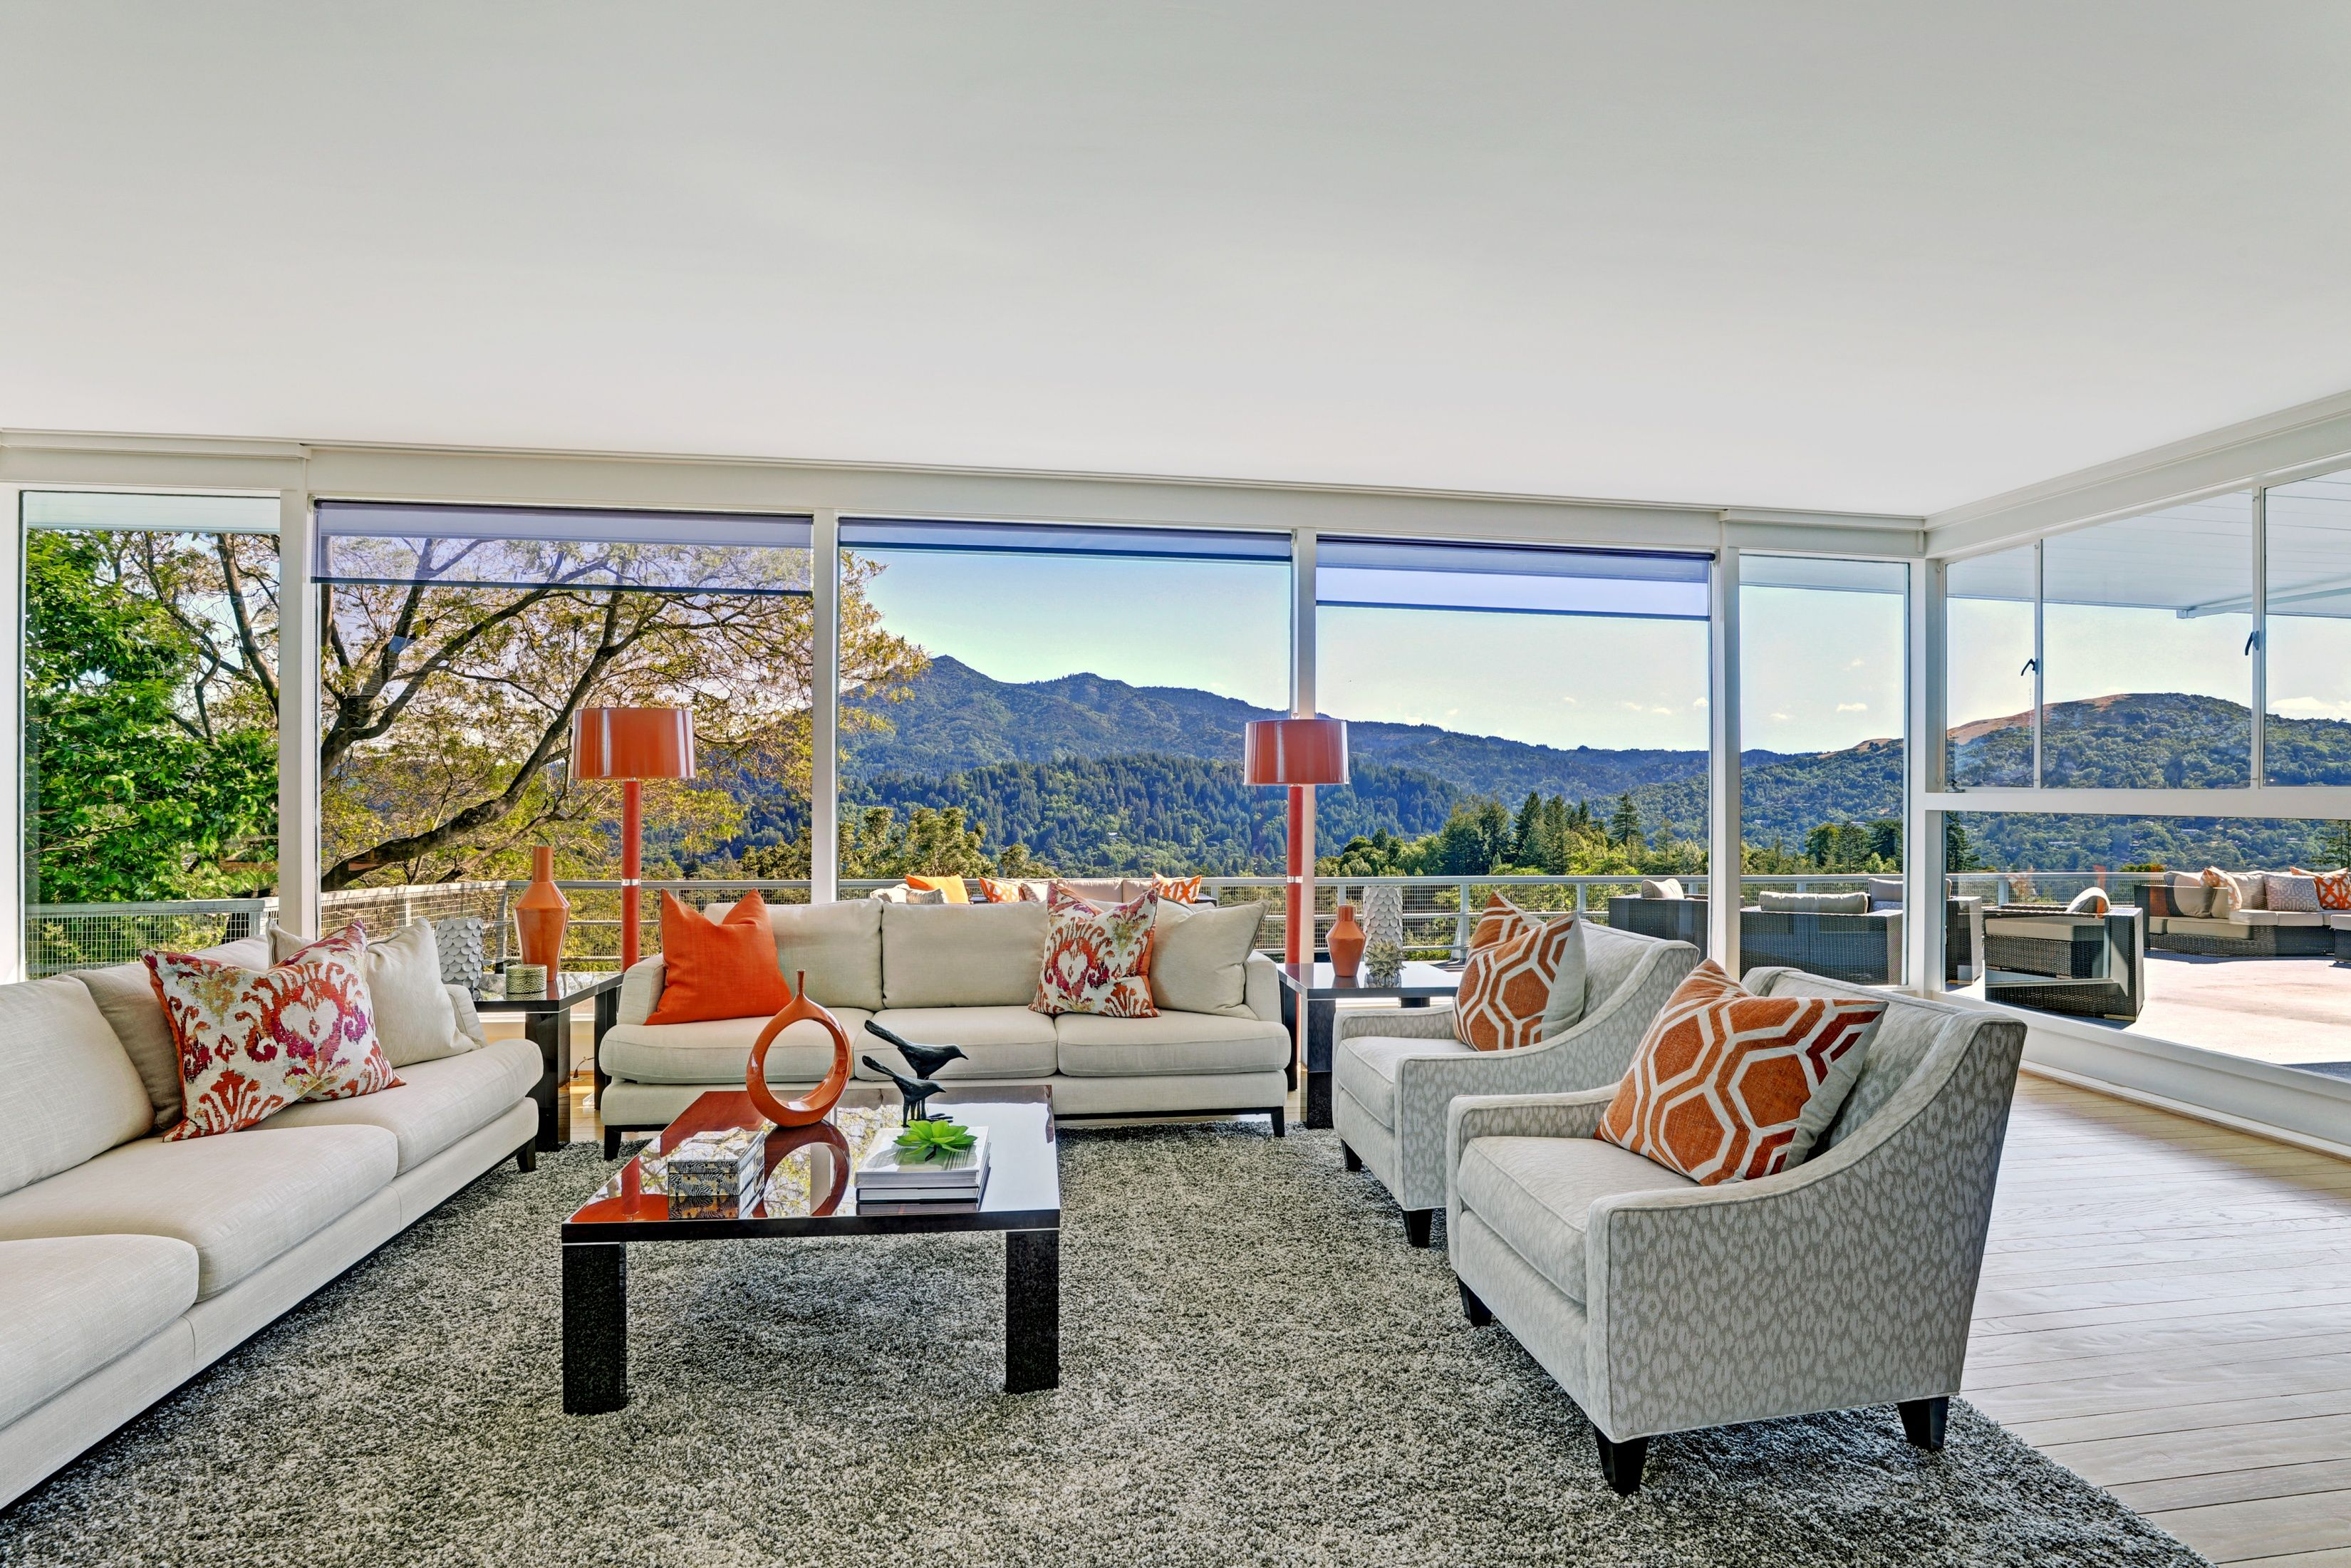 One of Ross' true legacy estates! This midcentury masterpiece designed for the Pomeroy family of Pomeroy Road! Perfectly site placed, the glass and wood home offers unobstructed indoor/outdoor living. The perfect place in which to end the week! Offered at 4,995,000 http://pacunion.us/10pomeroy